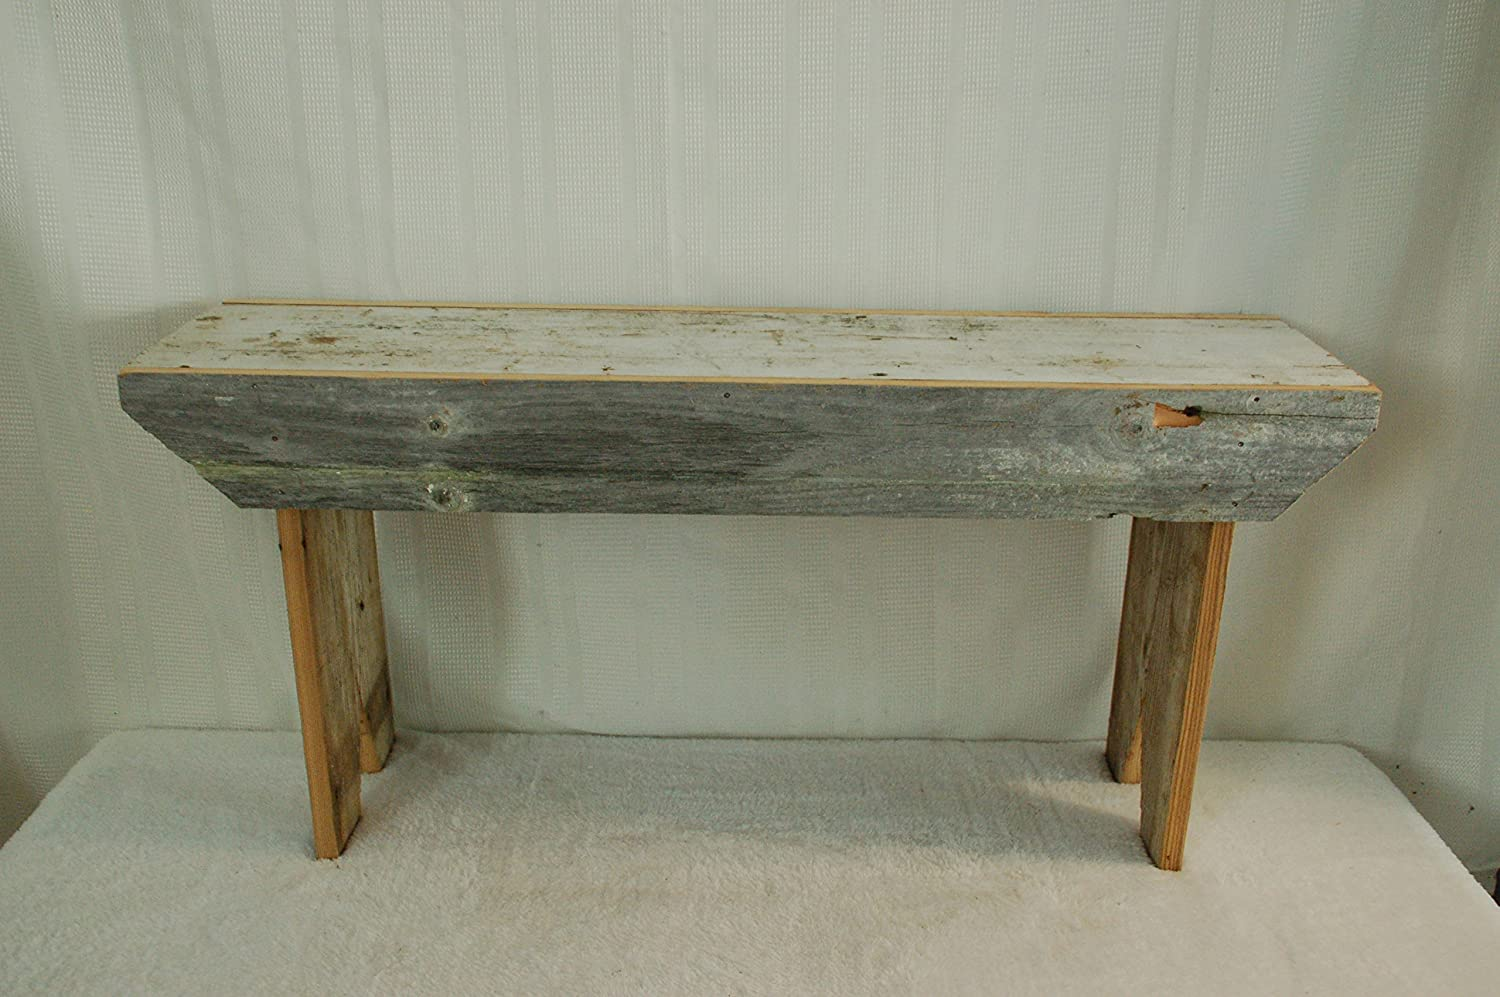 Amazon Com Rustic 3 Foot Barnwood Bench This Country Bench Seats Varies In Width From 8 10 And Stands 16 Off Ground Made From Antique Barnwood In Excess Of 100 Years Old